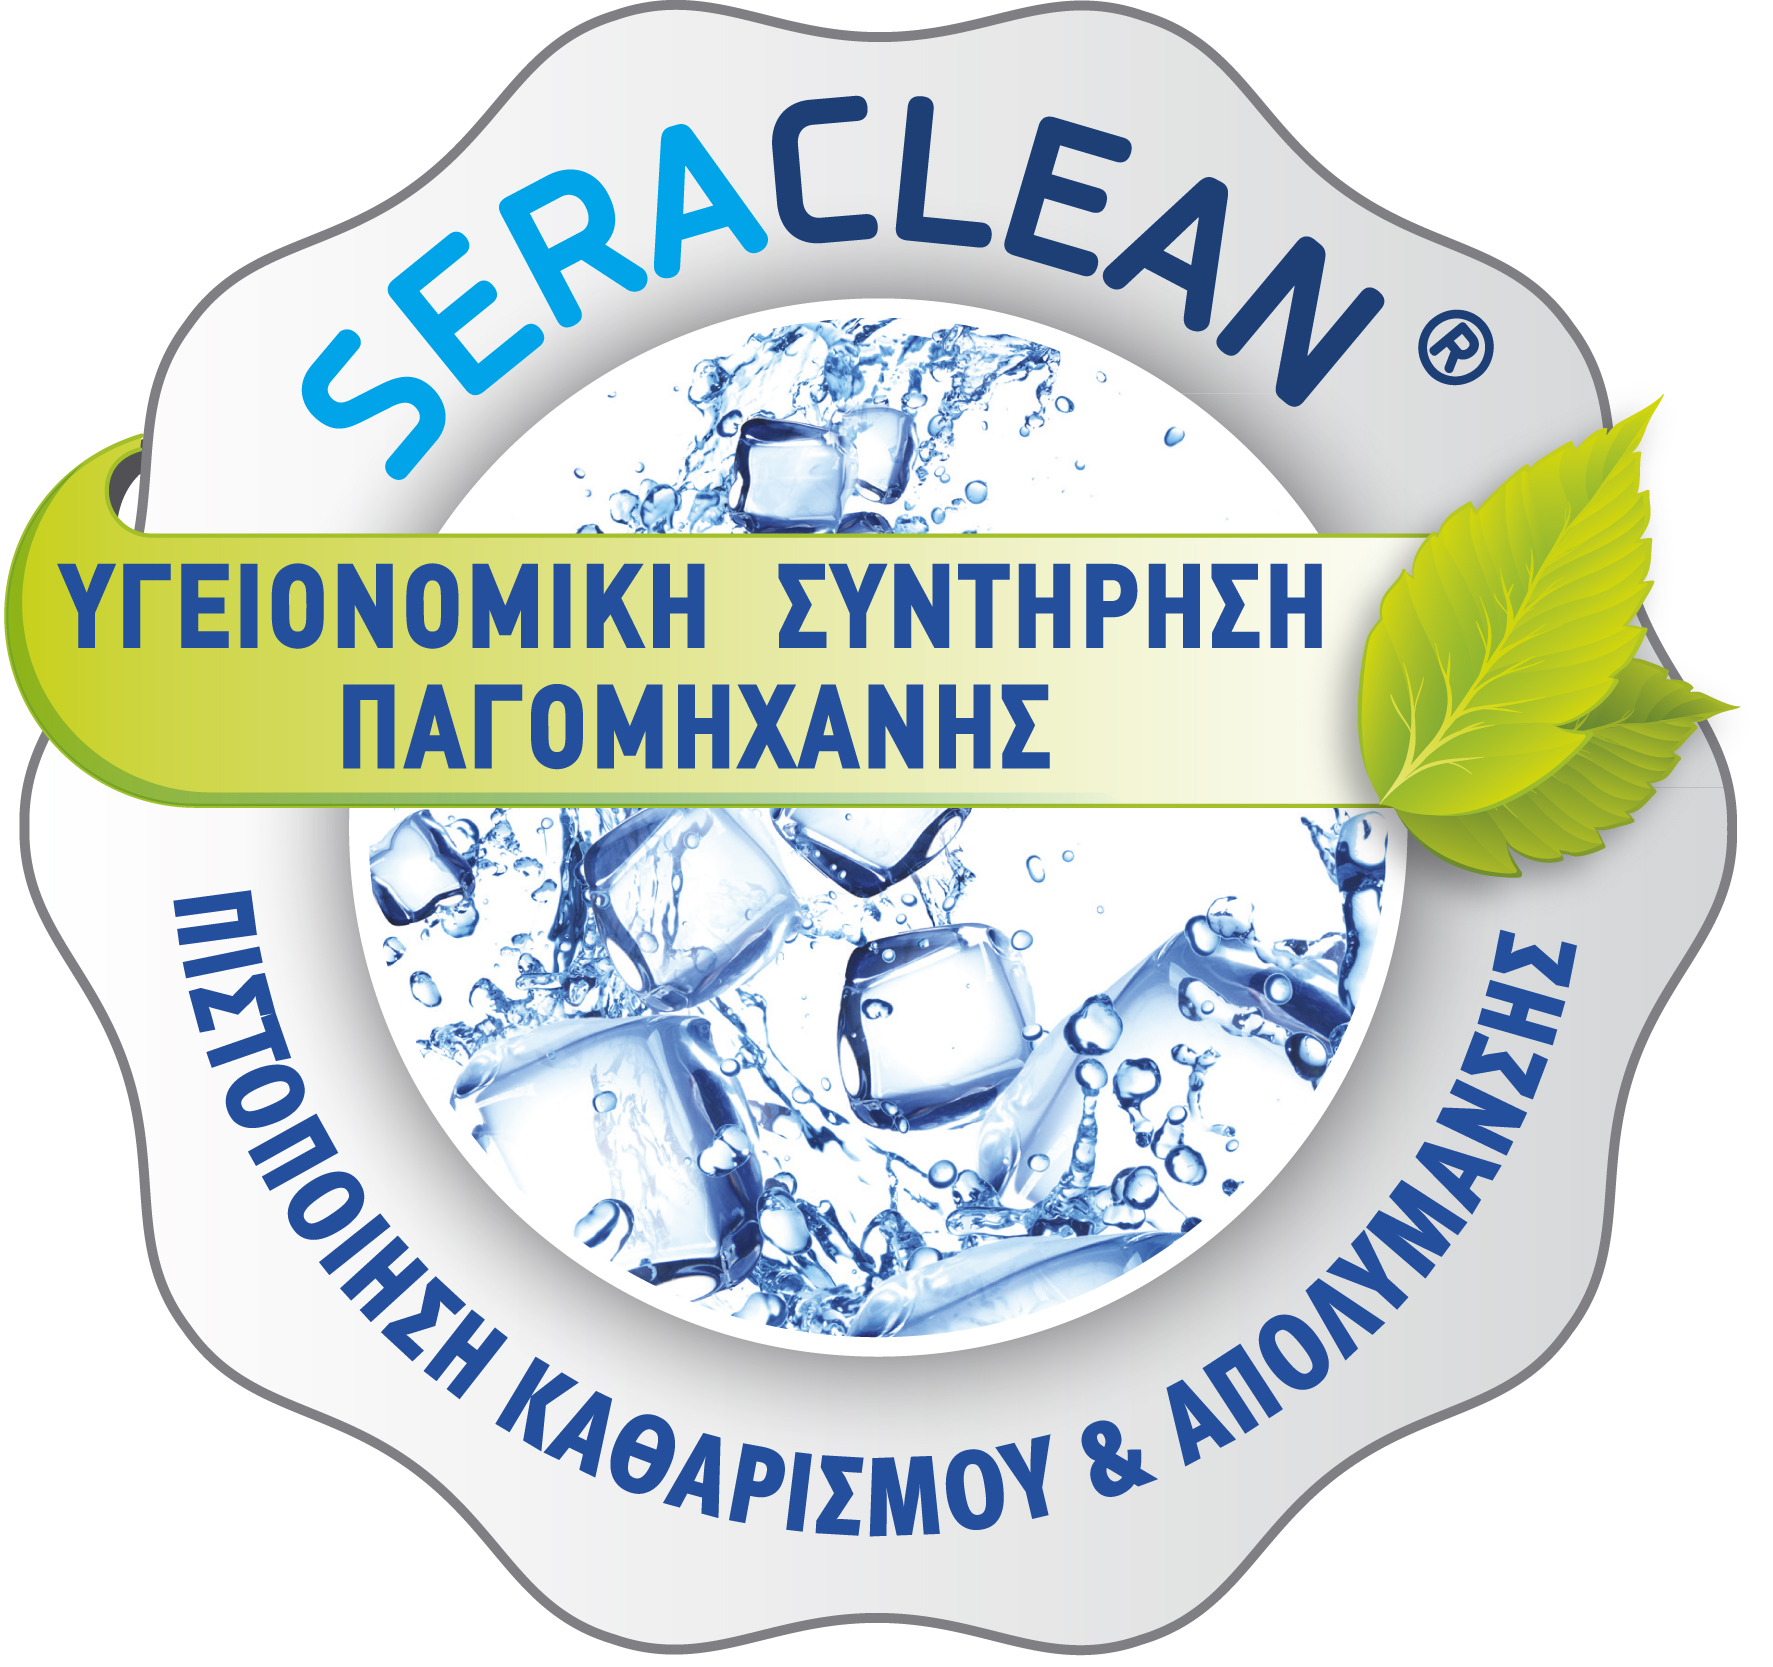 seraclean